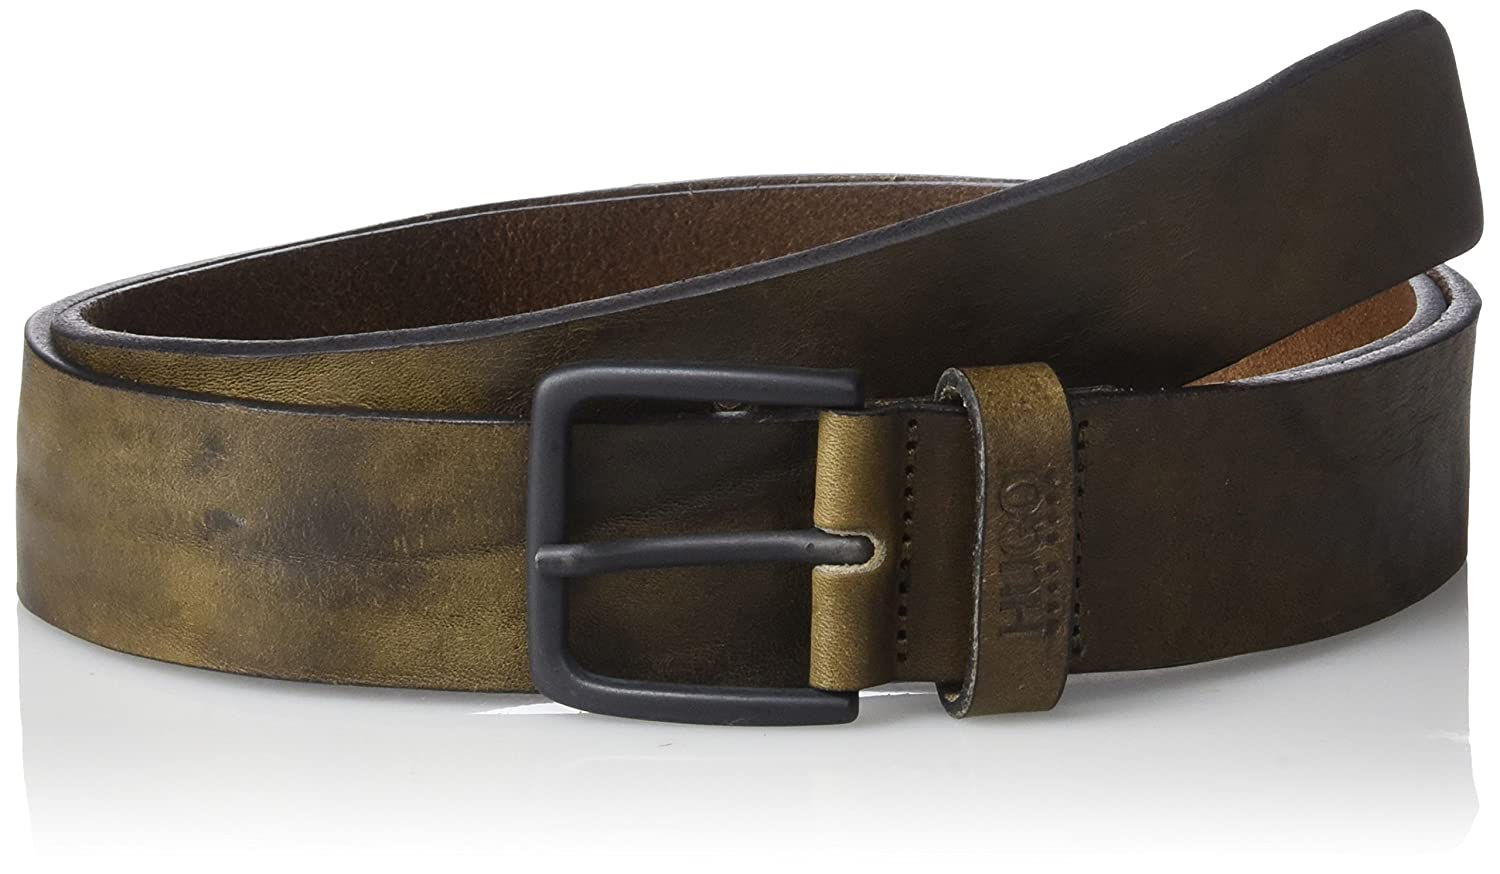 C-Gasillo Distressed Leather Casual Belt 50327685